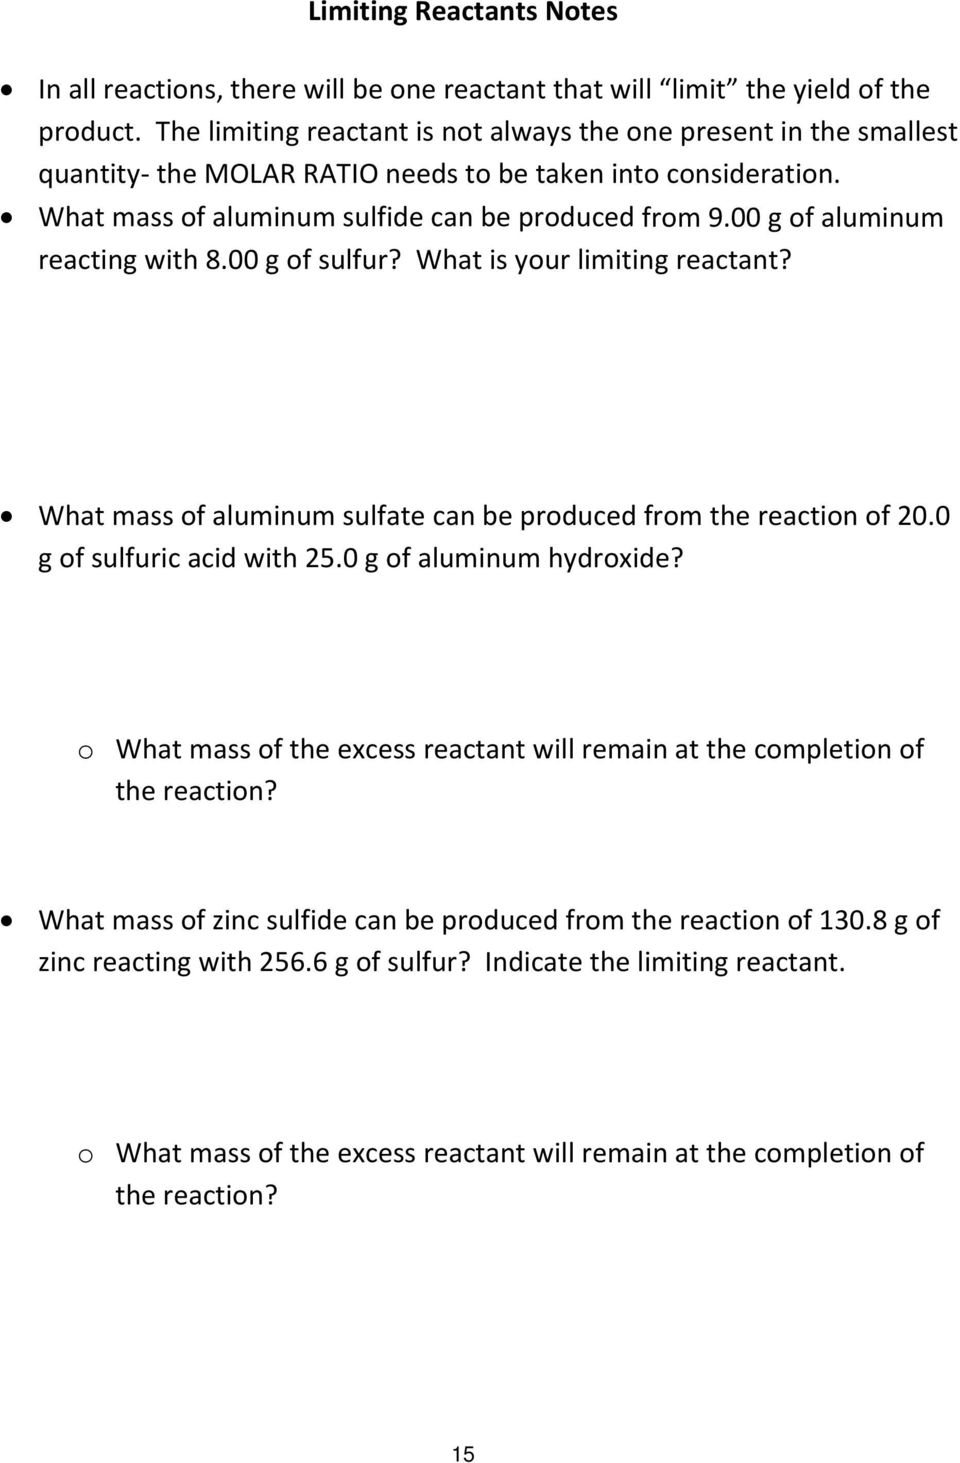 00 g of aluminum reacting with 8.00 g of sulfur? What is your limiting reactant? What mass of aluminum sulfate can be produced from the reaction of 20.0 g of sulfuric acid with 25.